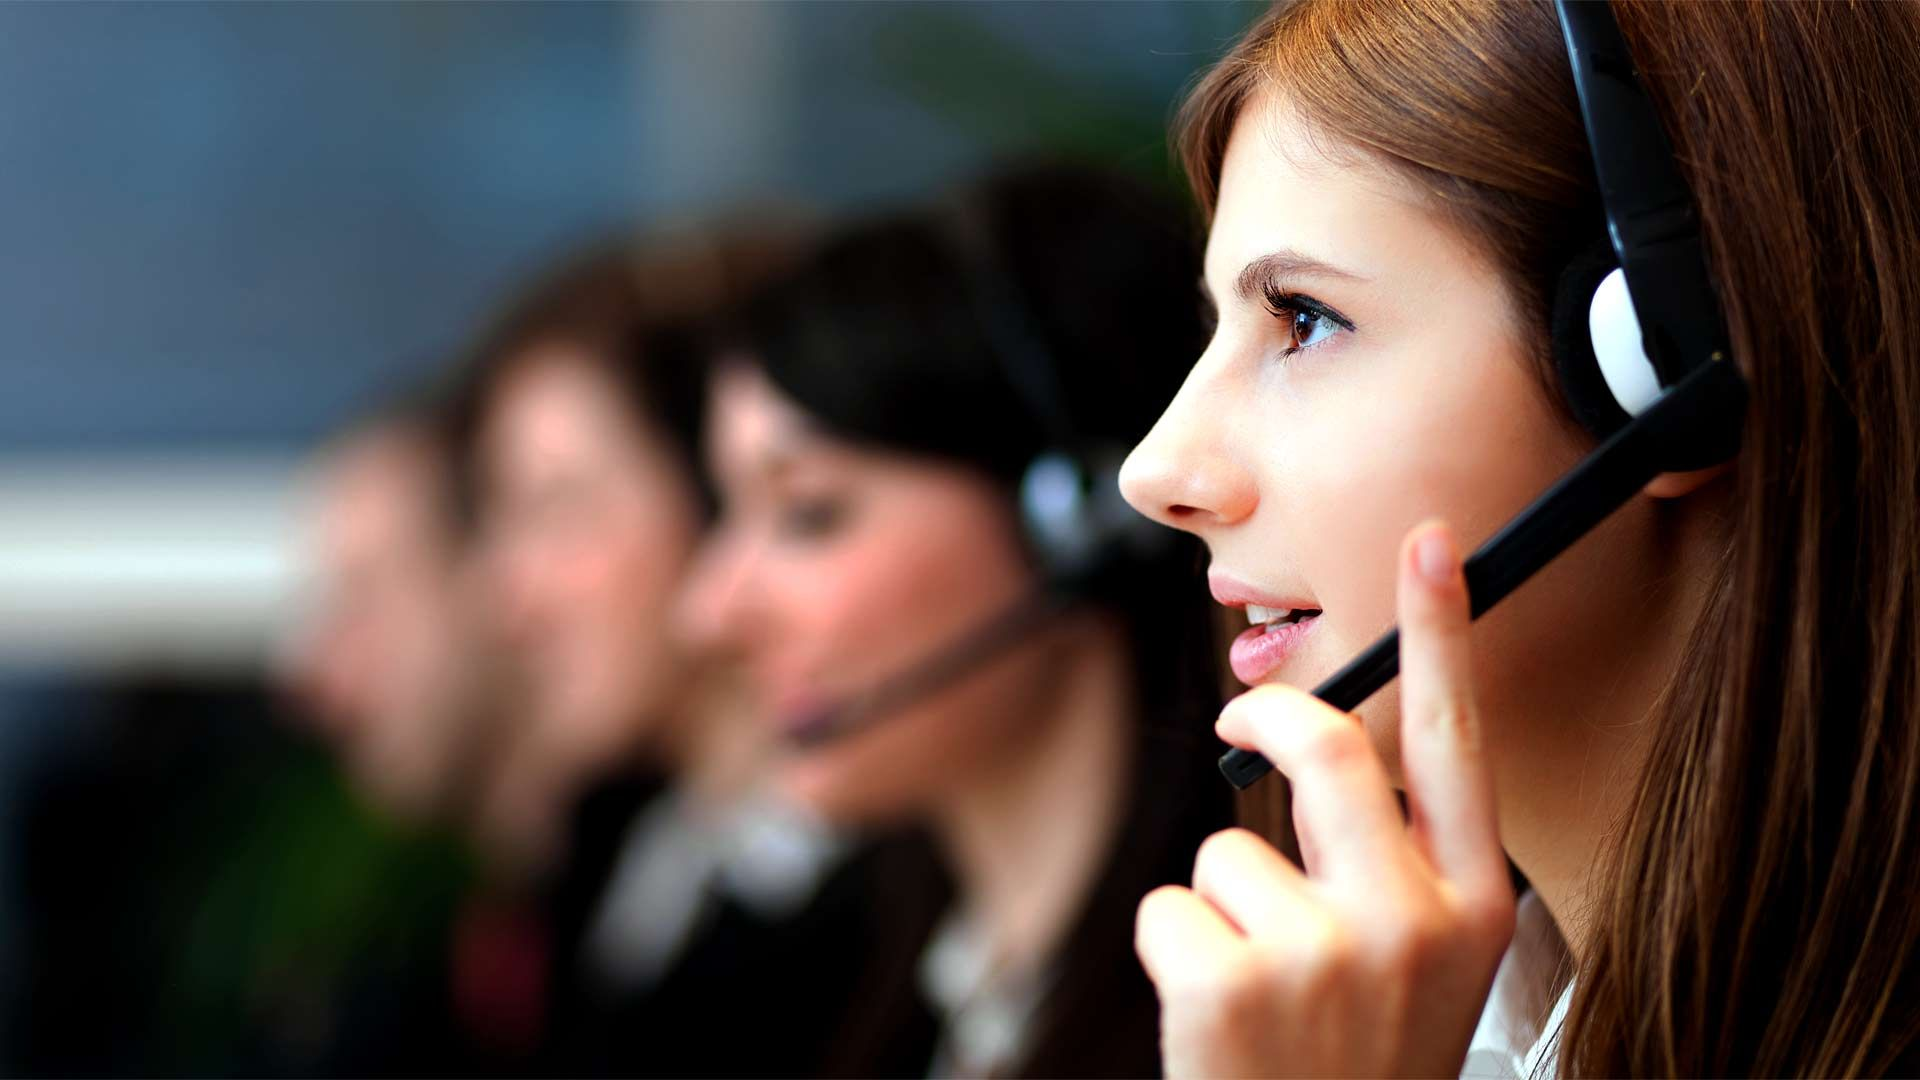 Mydlink Customer Service Phone Number Offer's You The Best